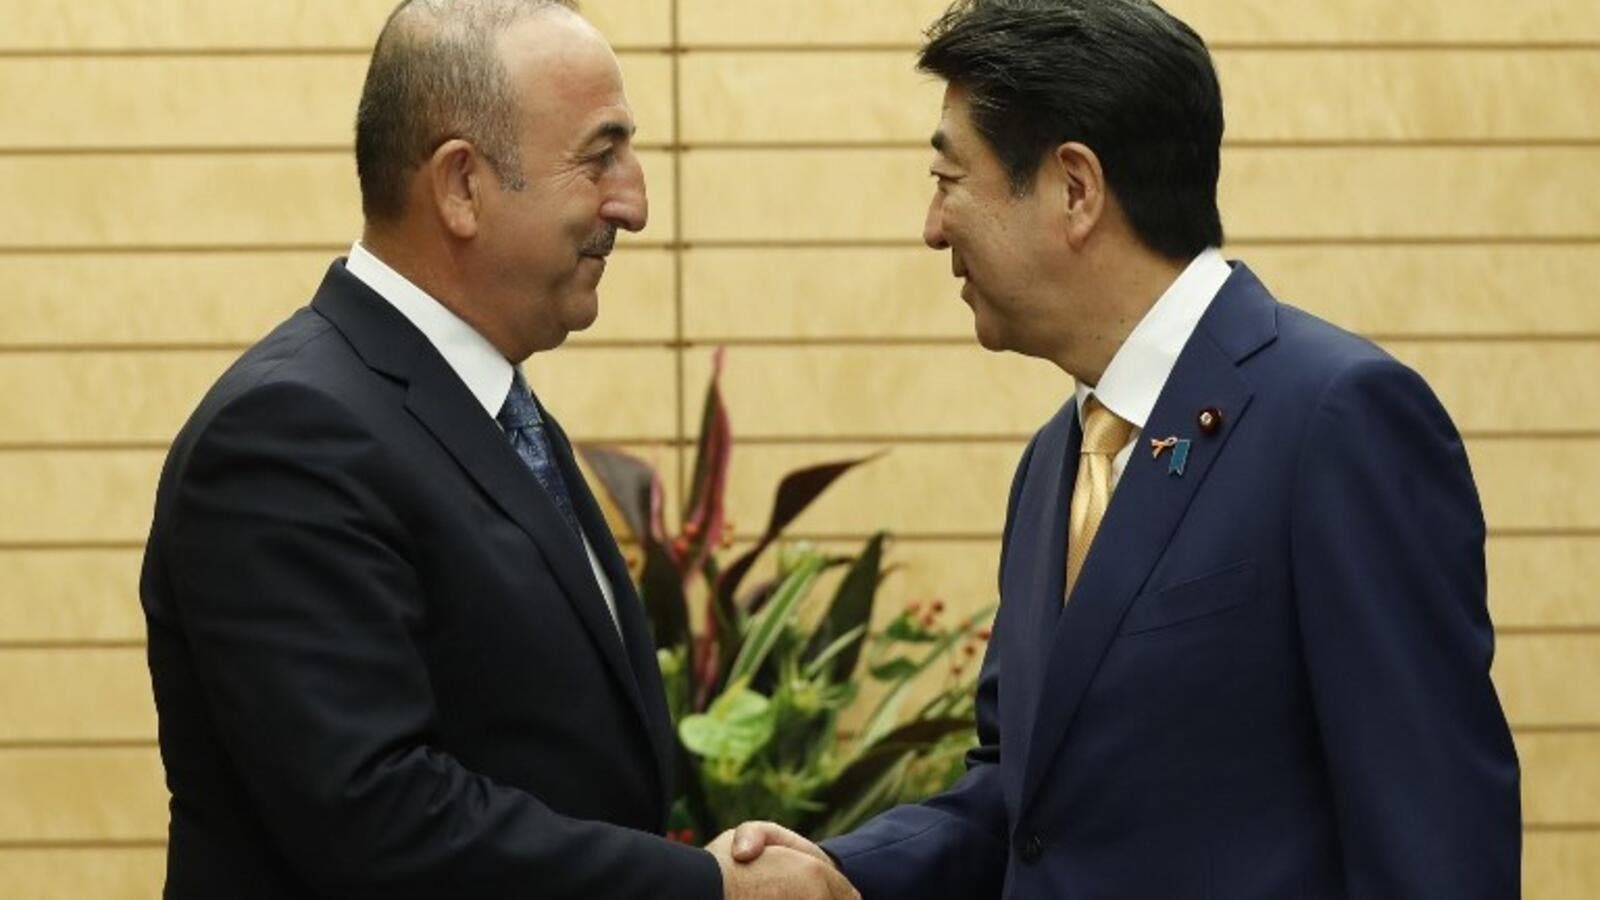 Turkish Foreign Minister Mevlut Cavusoglu (L) shakes hands with Japanese Prime Minister Shinzo Abe in Tokyo on November 6, 2018. (ISSEI KATO / POOL / AFP)